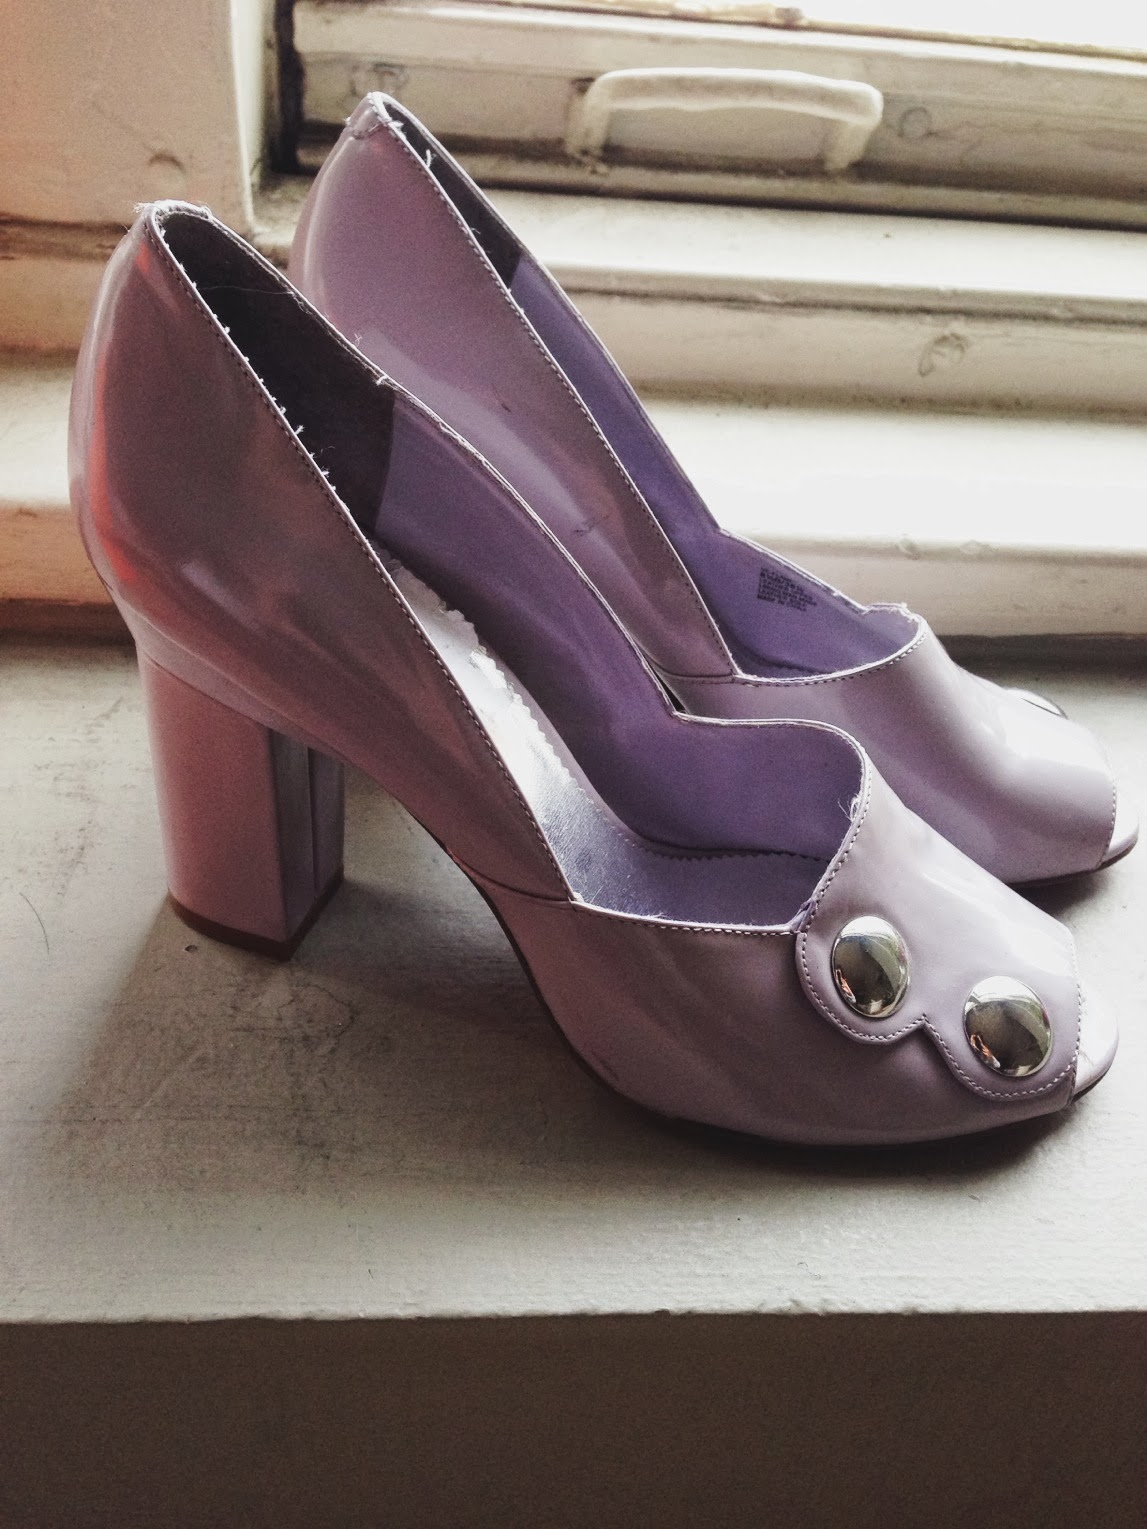 pumps, vince camuto, purple, lavender, cute, mid-heel, block heel, dressy, vintage, shopping, inspiration, scallop, silver, 2013, 2014